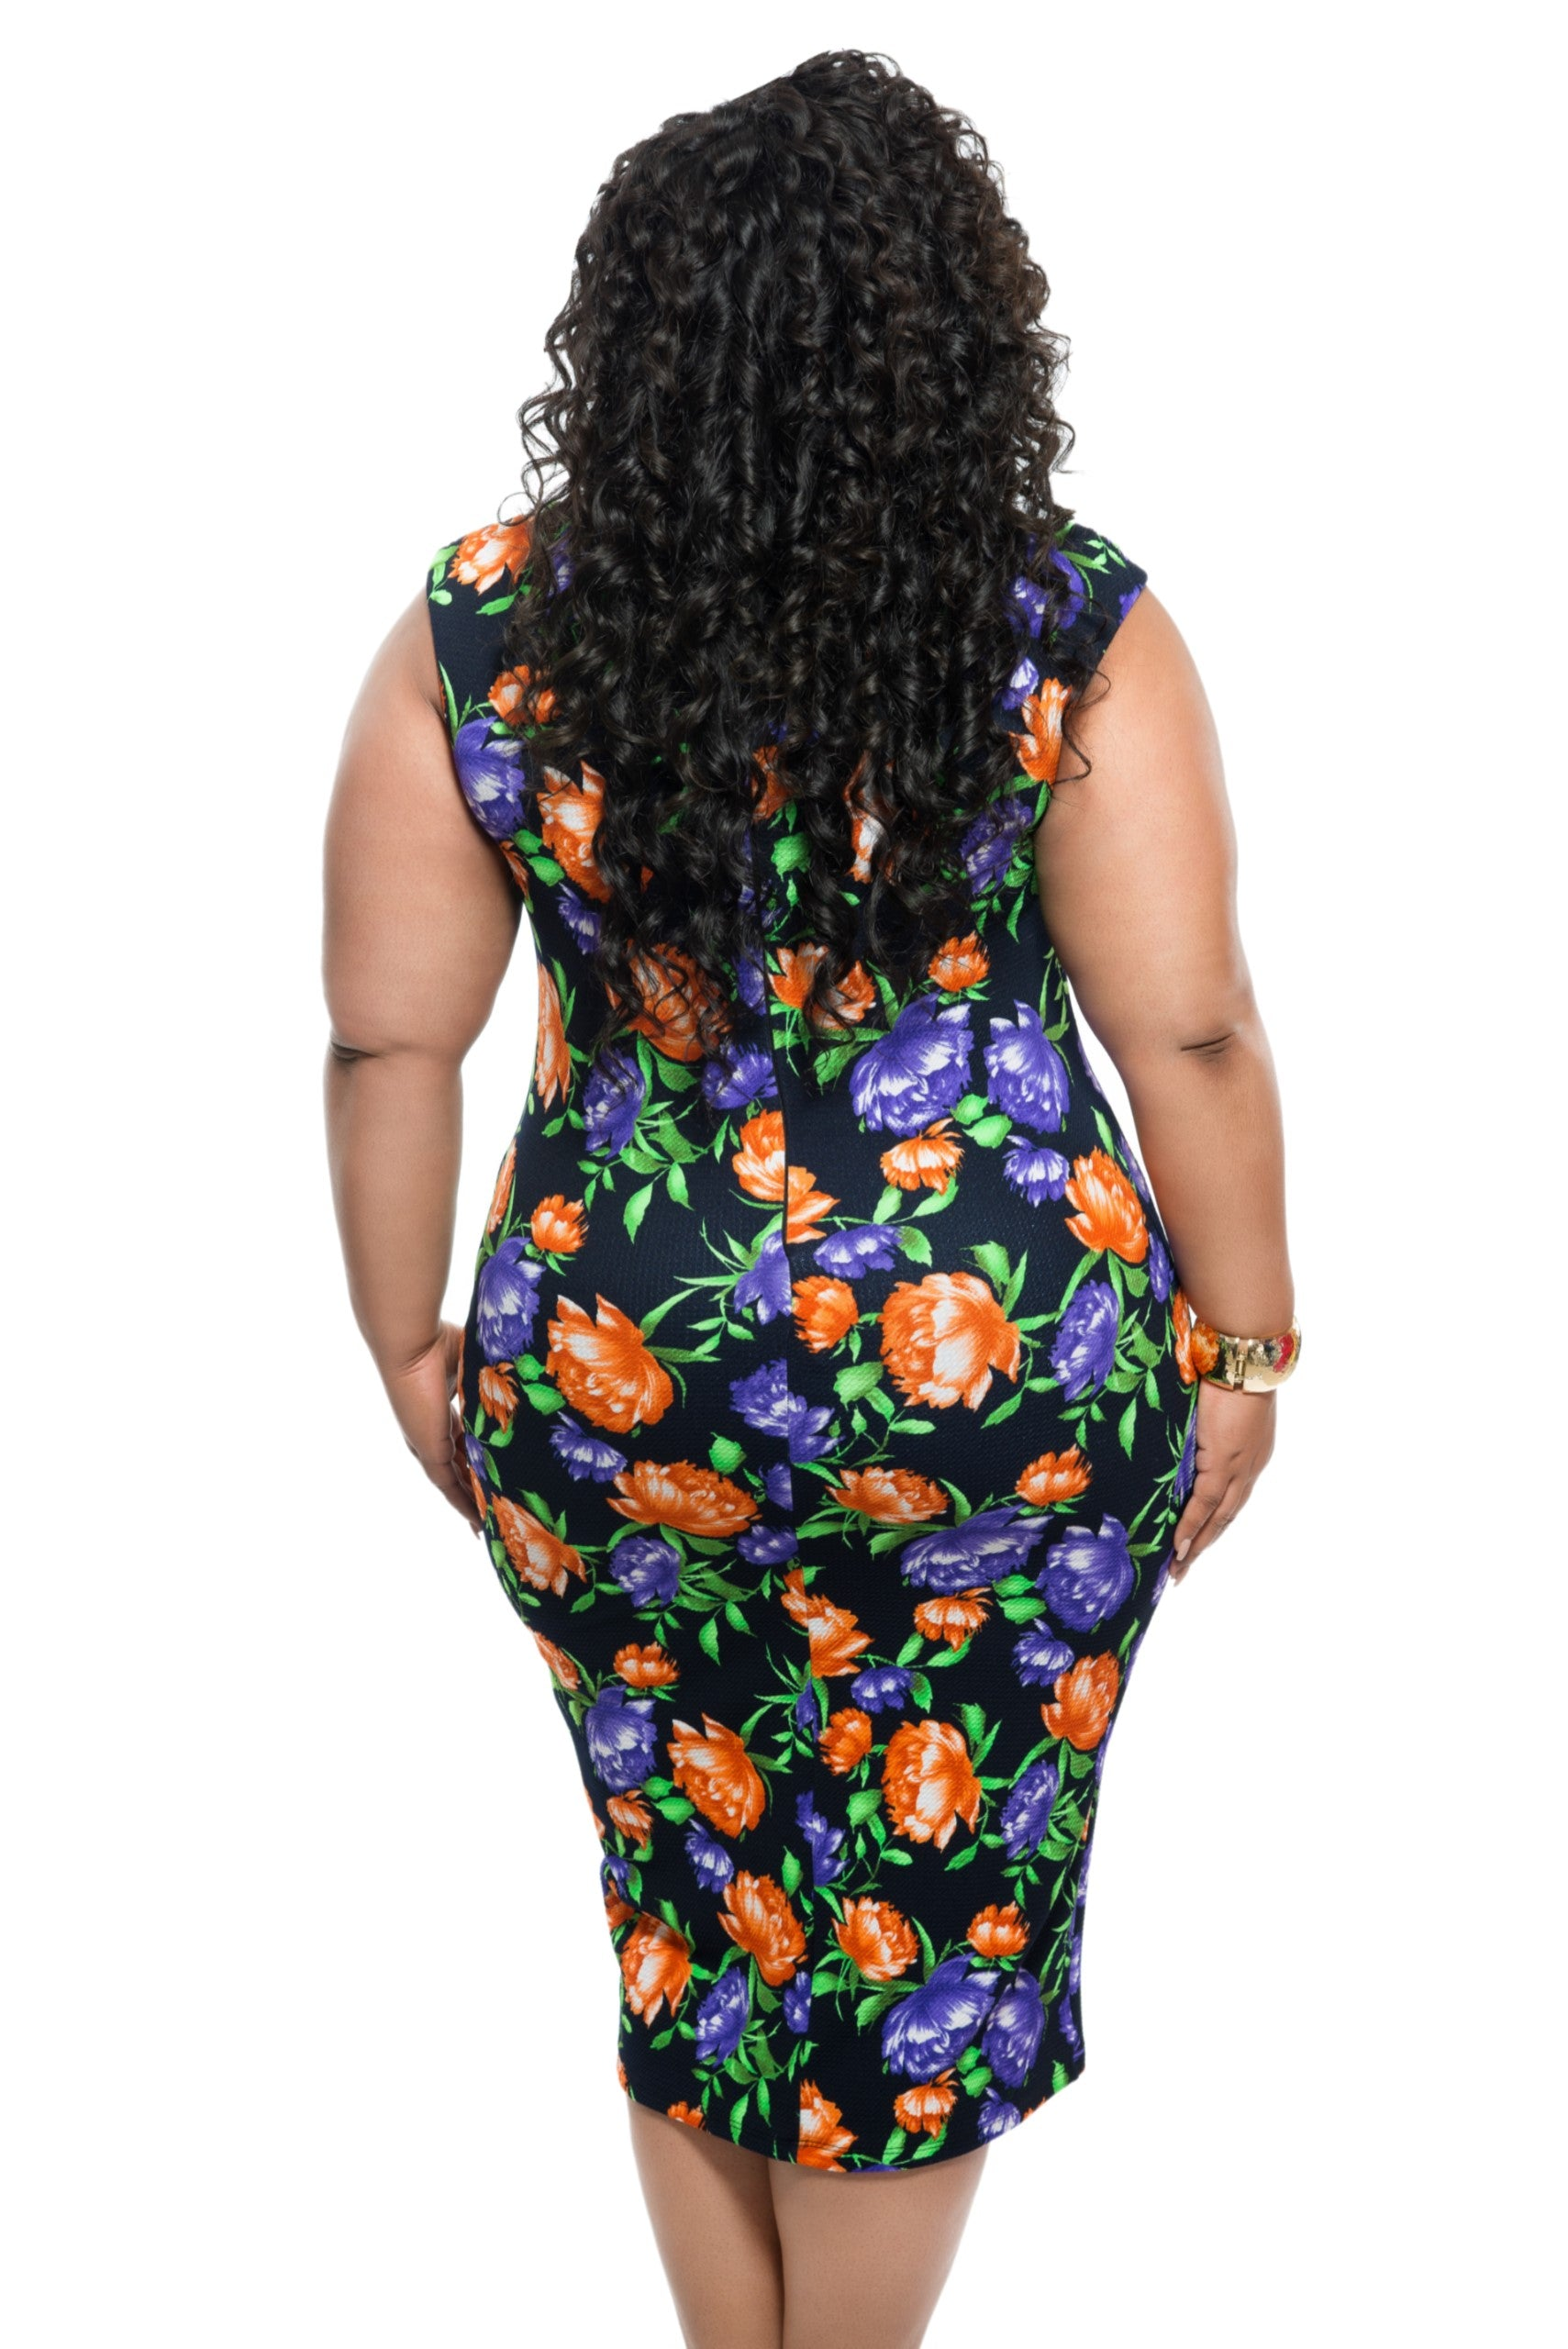 Final Sale Plus Size BodyCon Sleeveless Dress in Black, Purple, and Orange Floral Print